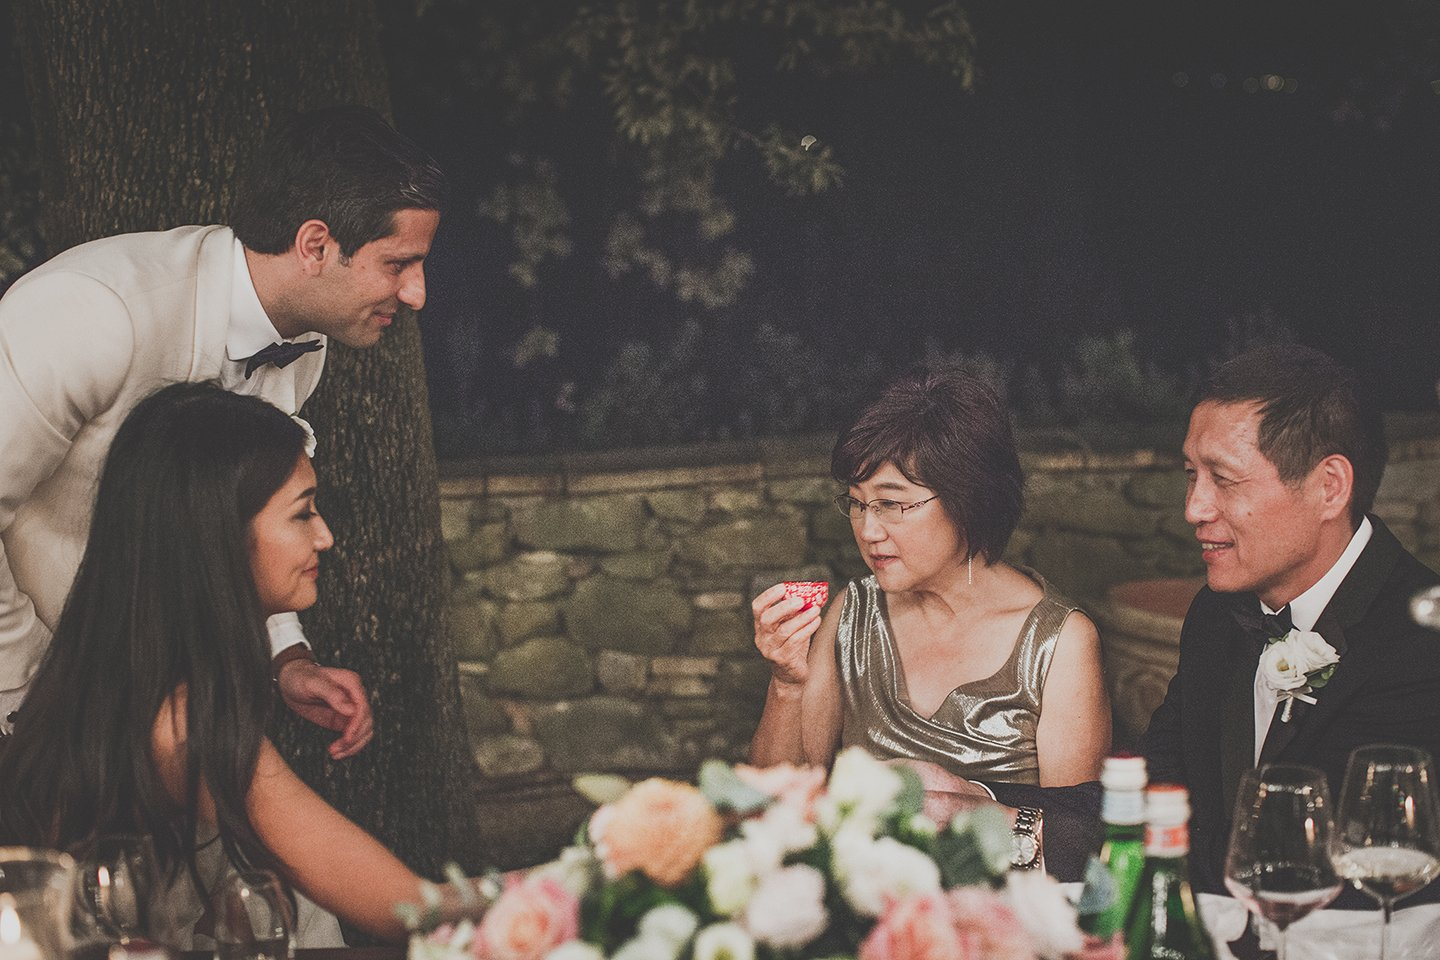 tea-chinese-wedding-ceremony-vignamaggio-tuscany-